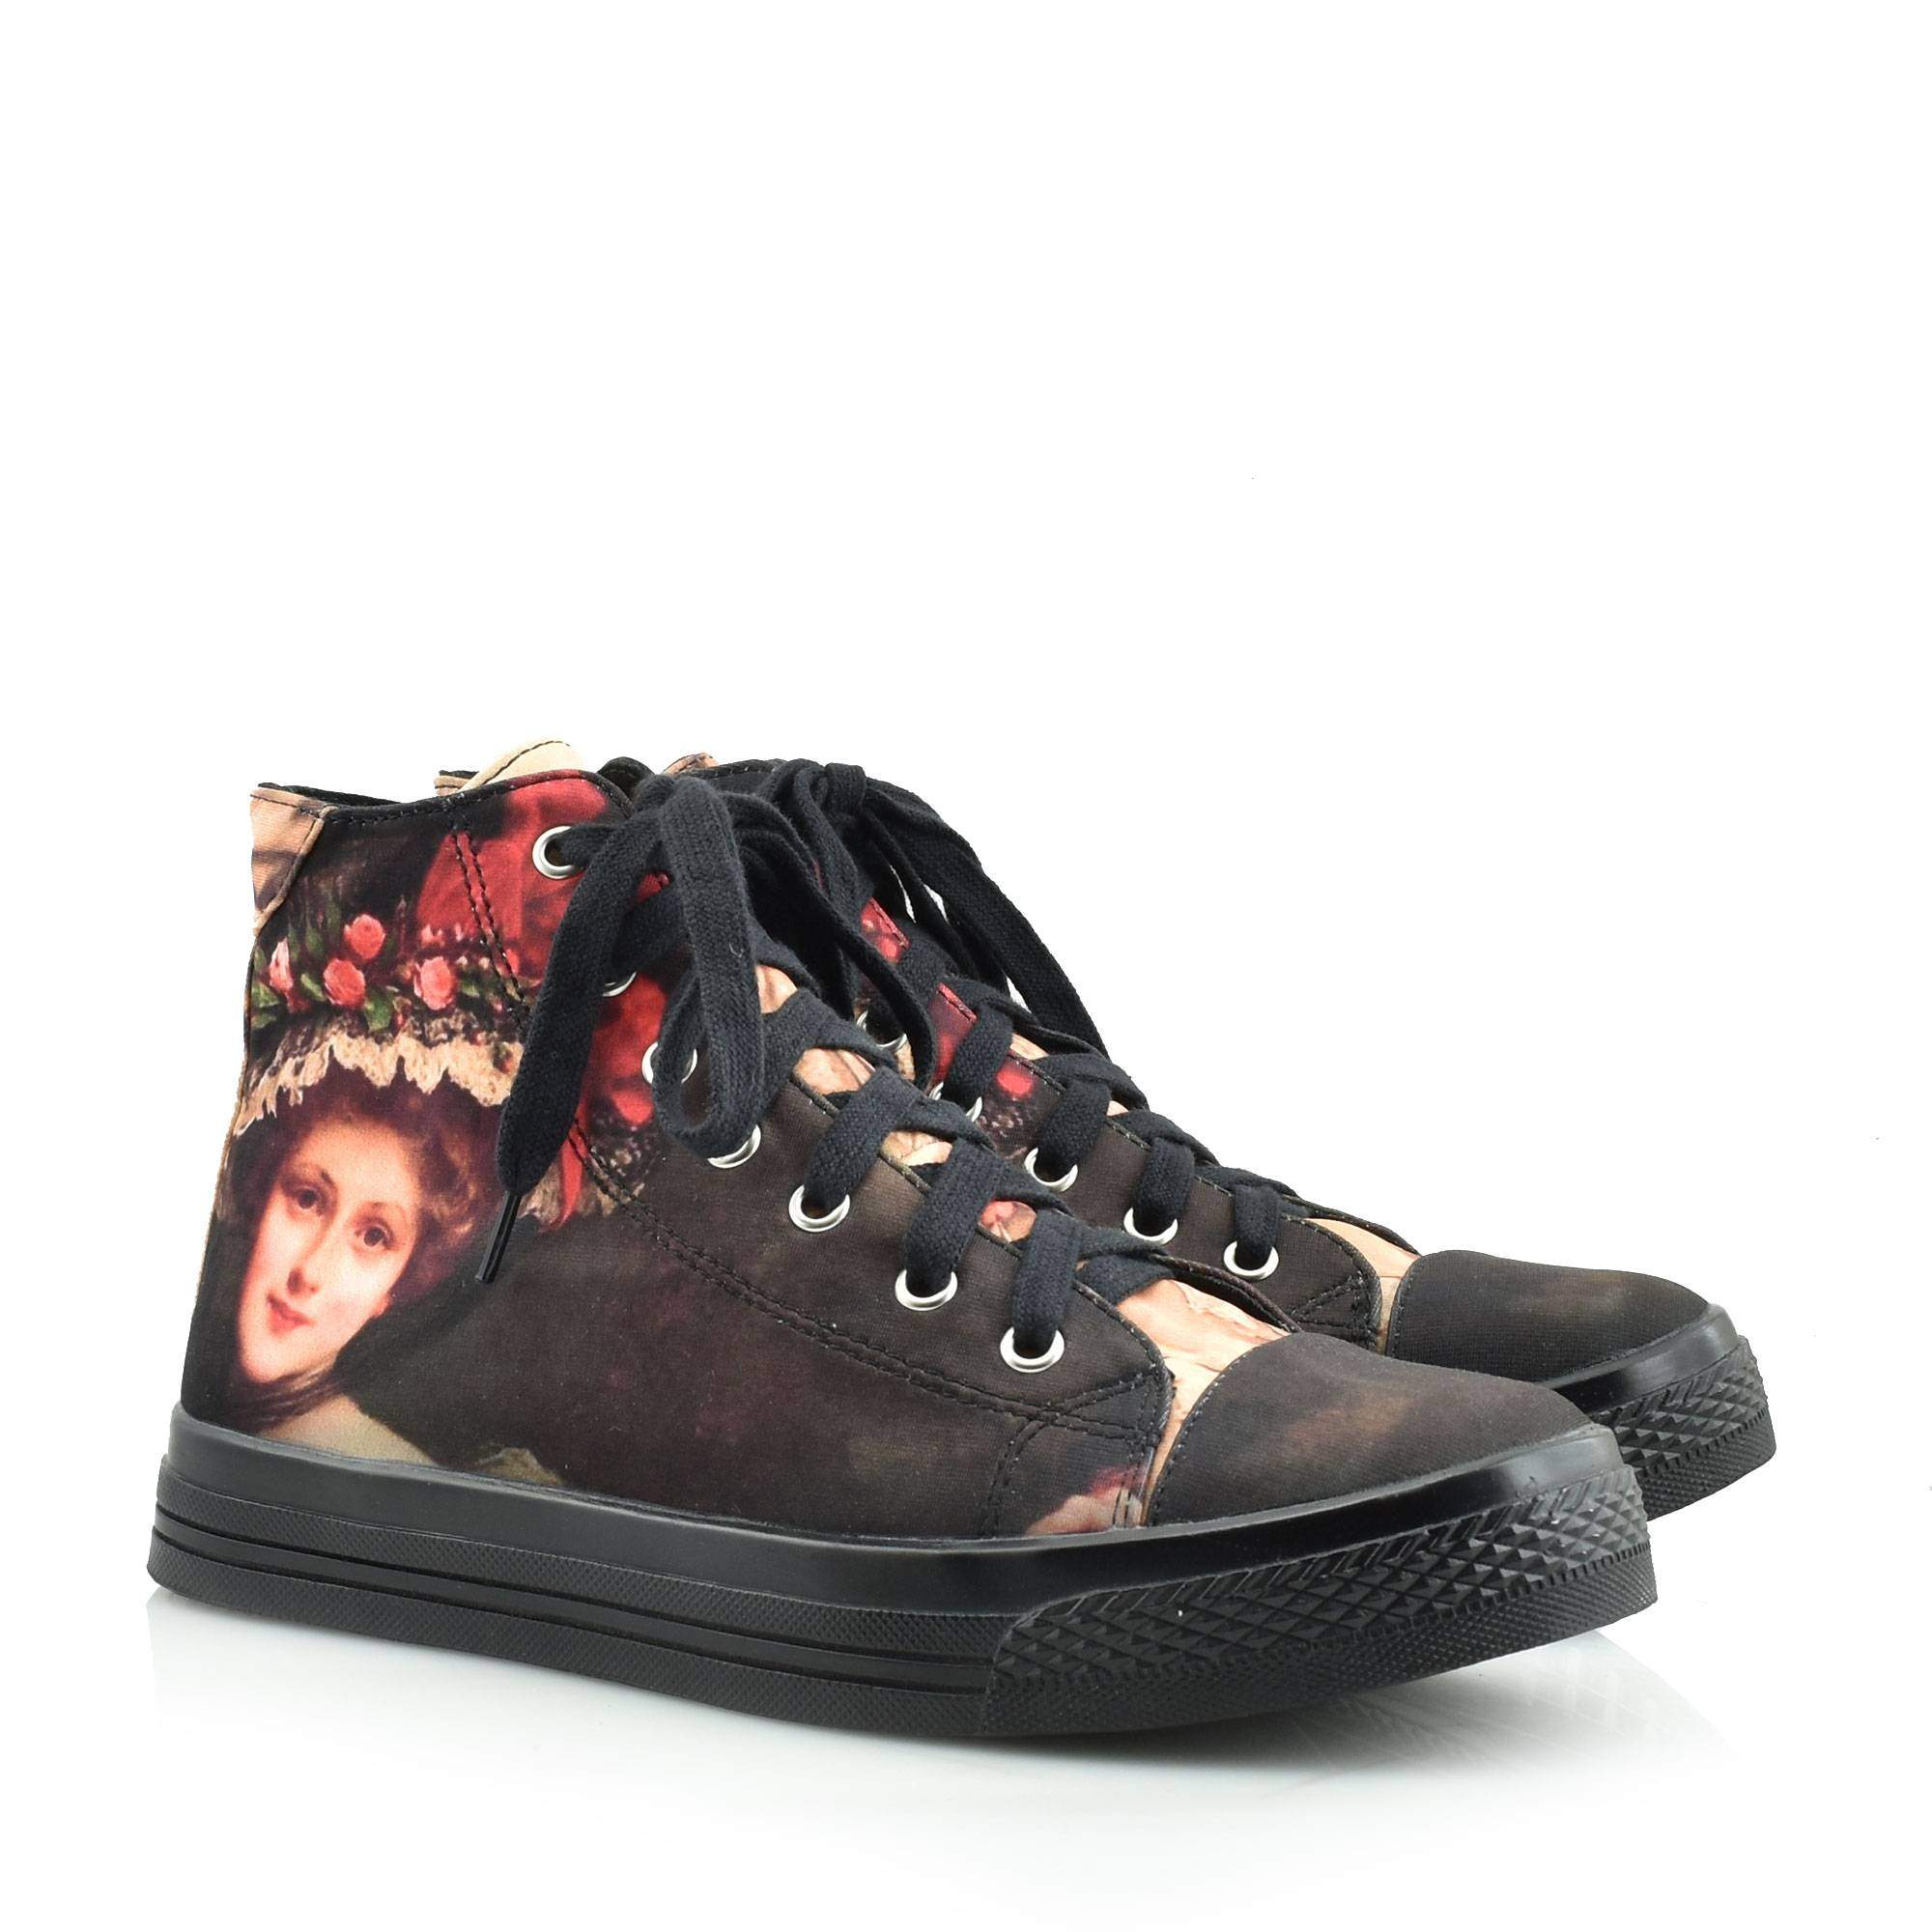 JEFFREY CAMPBELL JEFFREY STAR SNEAKERS - F1327